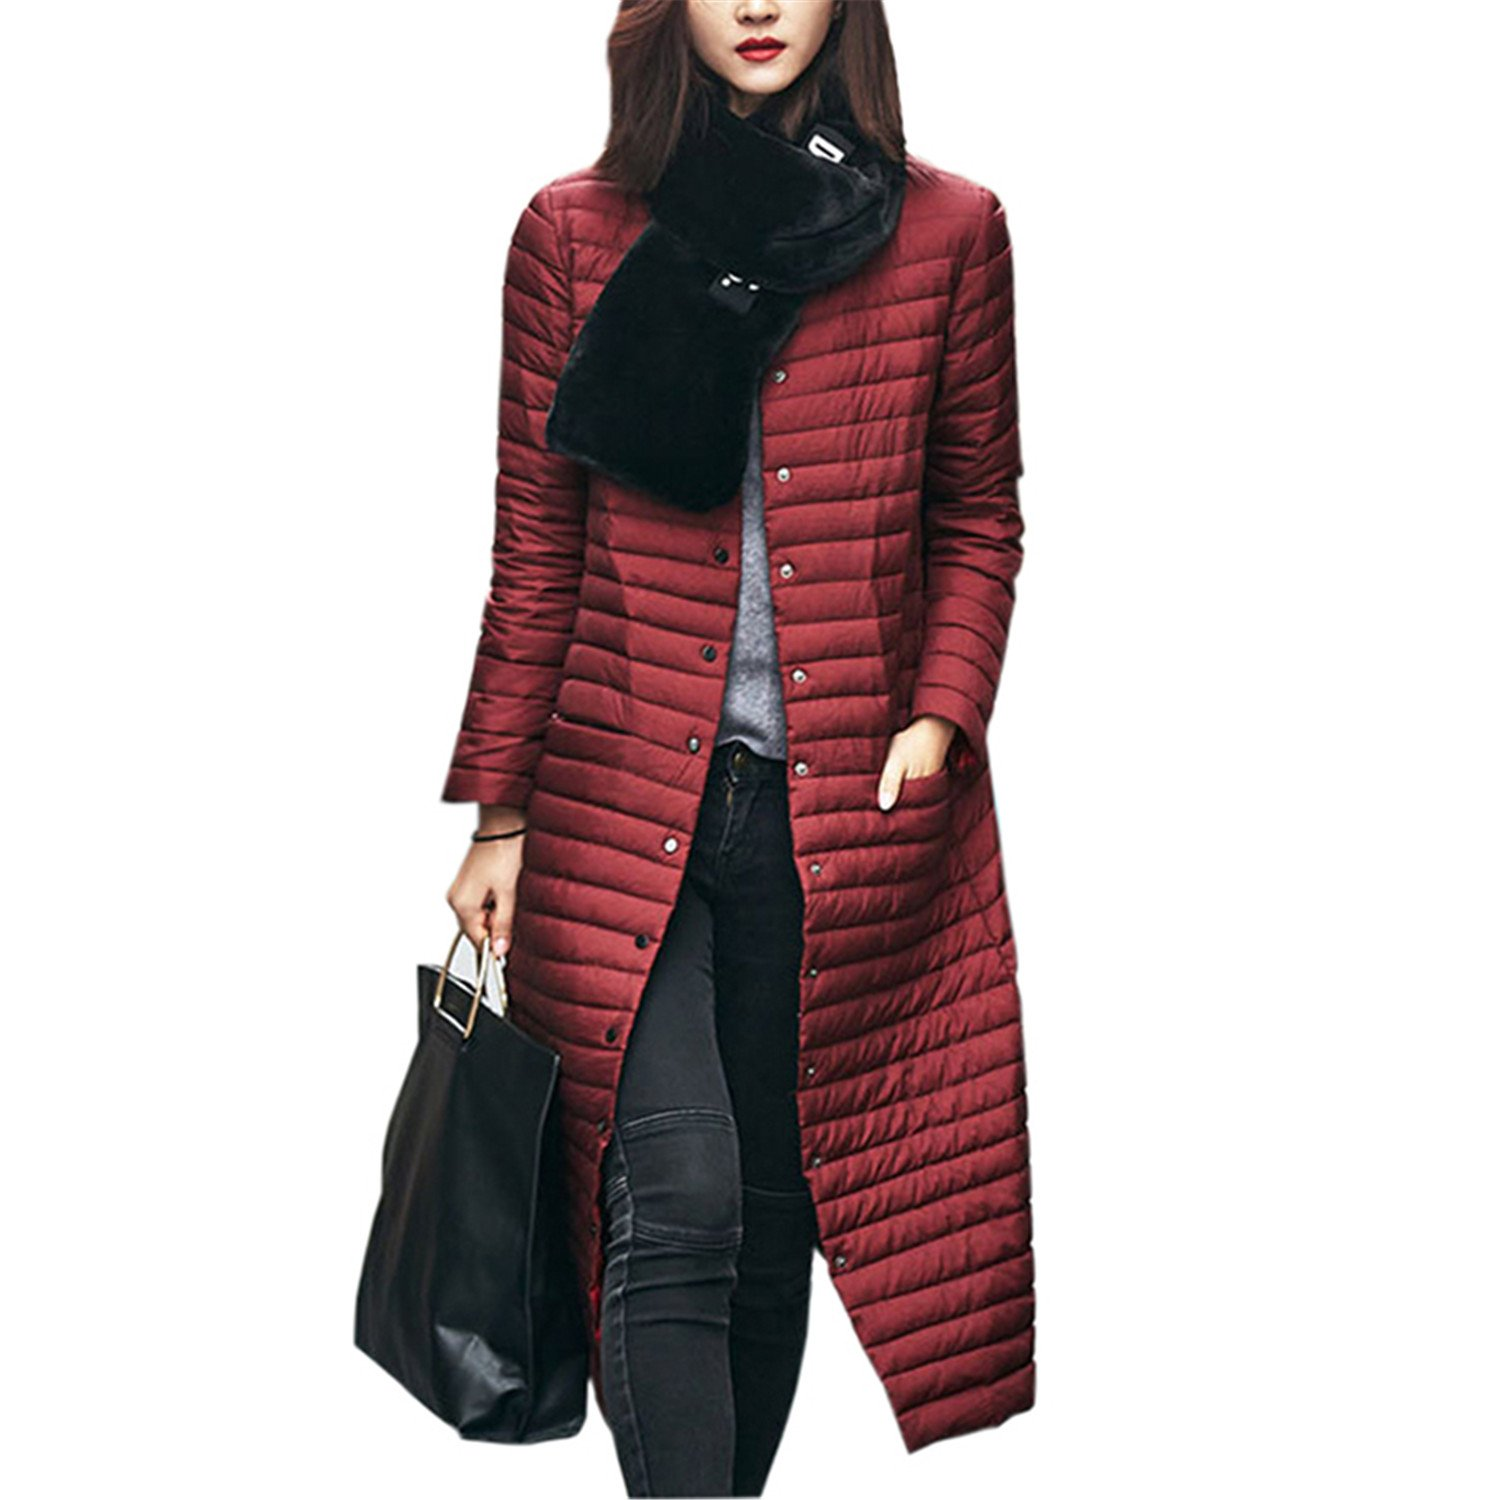 Dapengzhu Winter Jacket Women Coat Parka Mujer XXL Plus Size Jaqueta Feminina Inverno Outerwear New Chaqueta Casaco Feminino A698 Burgundy XXL at Amazon ...